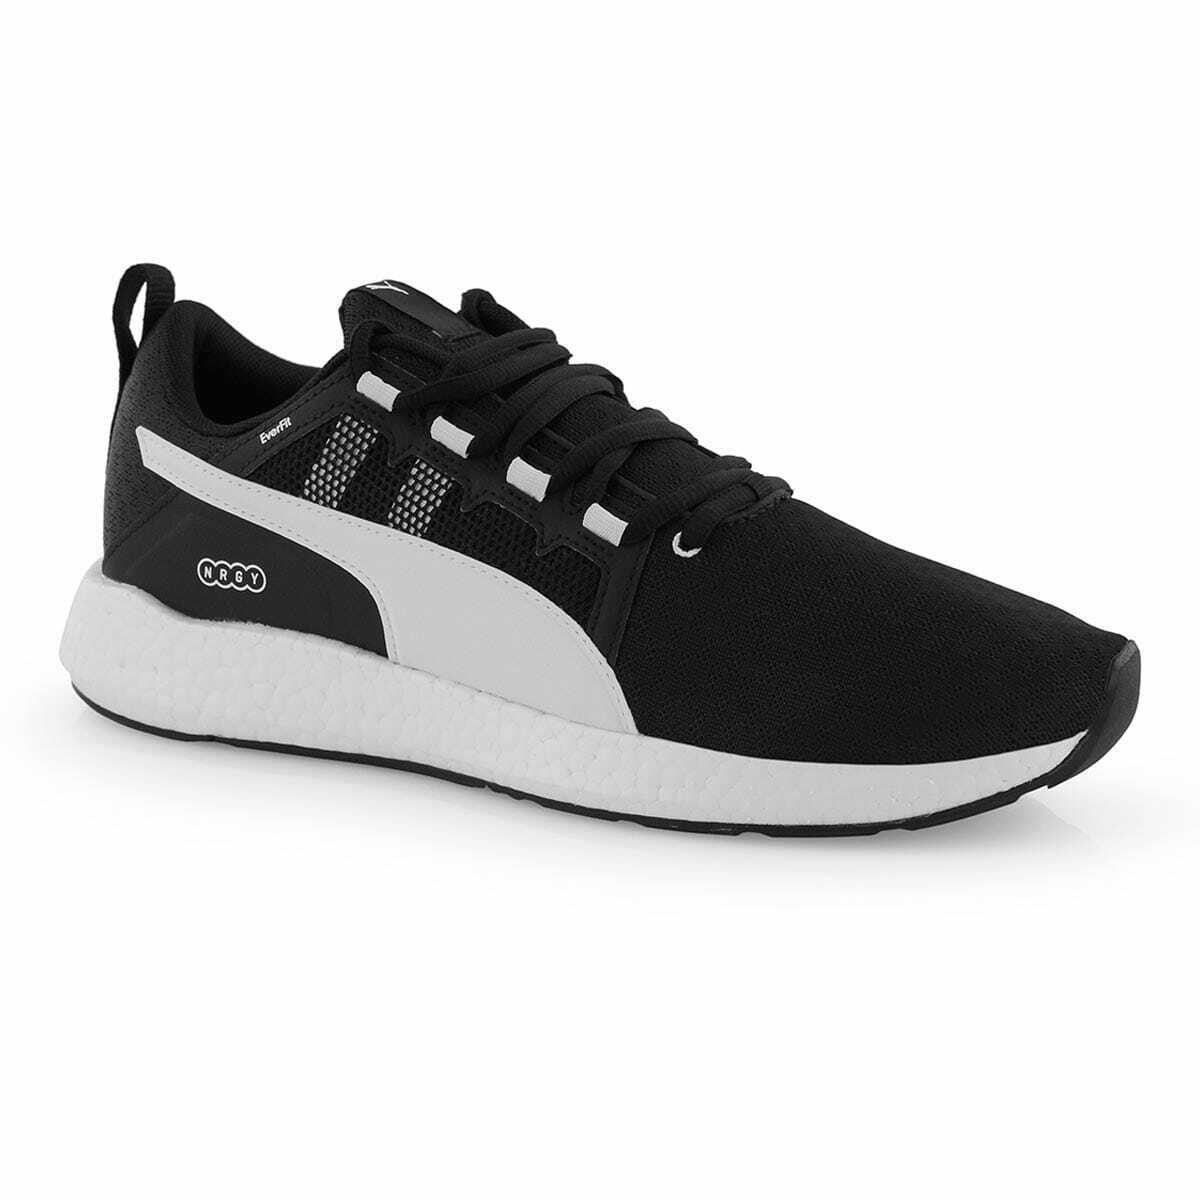 Puma Men's NRGY Neko Turbo Lace Up Fashion Sneaker